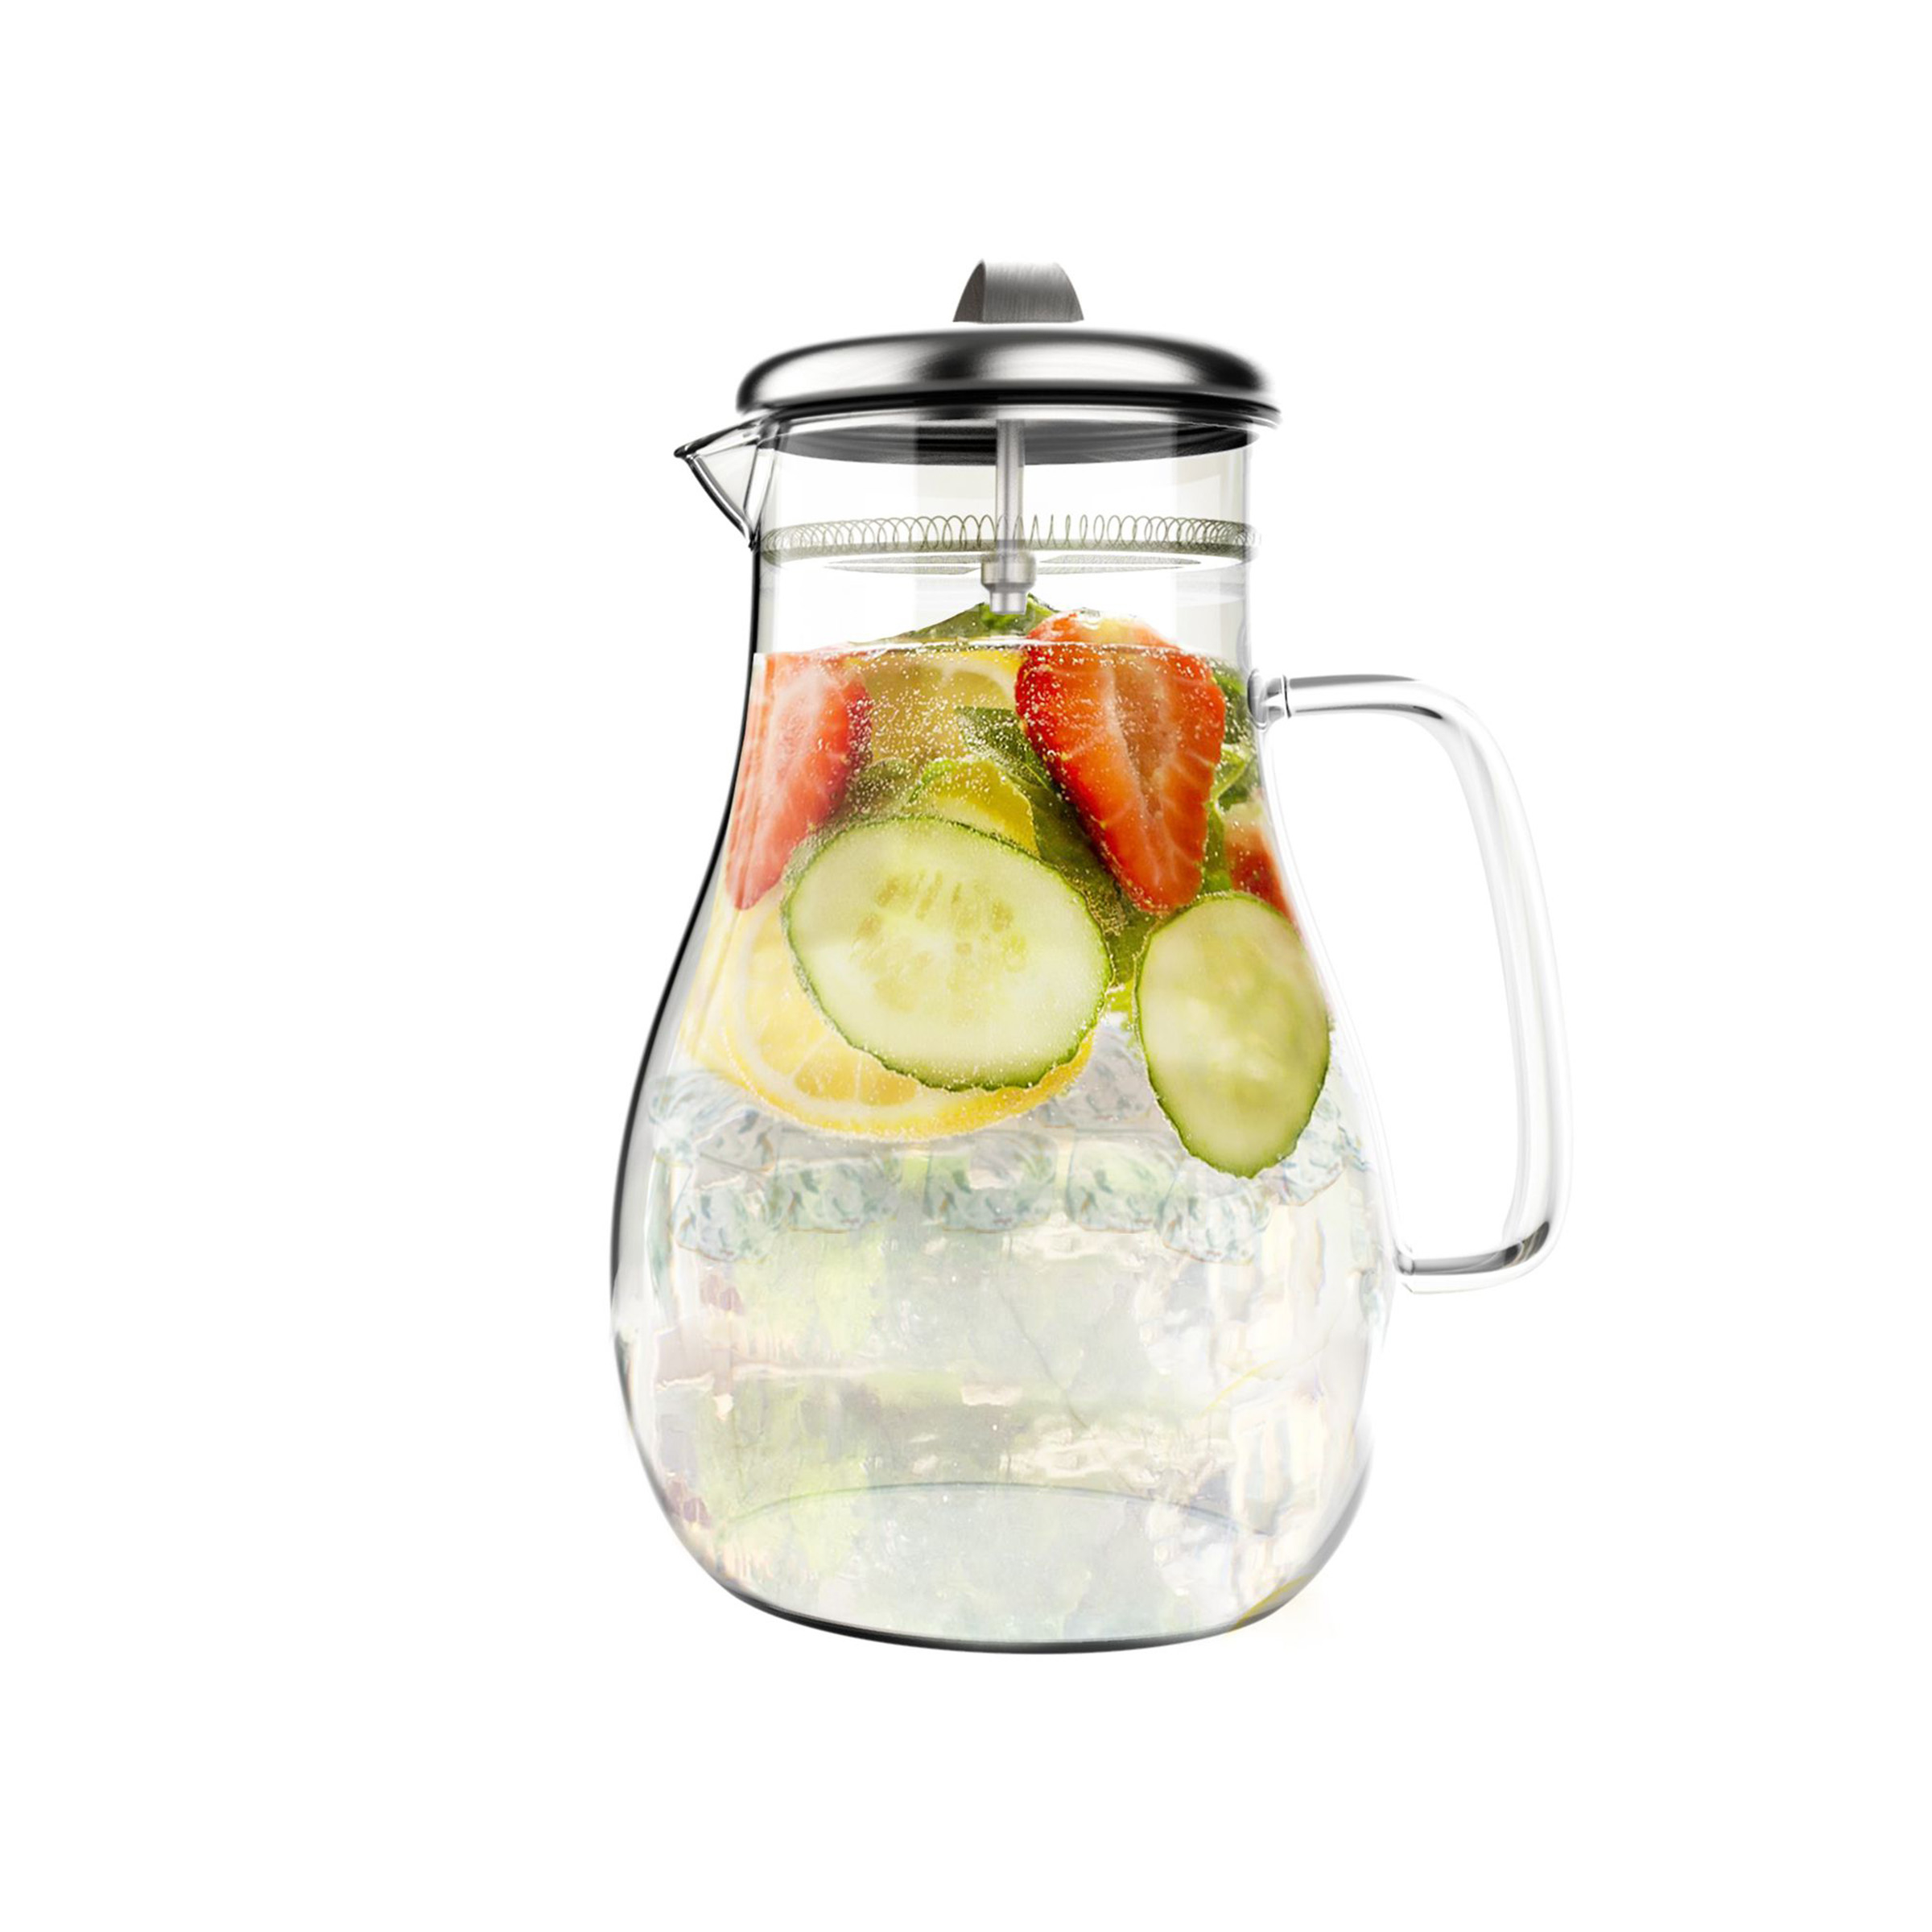 Glass Pitcher-64oz. Carafe with Stainless Steel Filter Lid- Heat Resistant to 300F